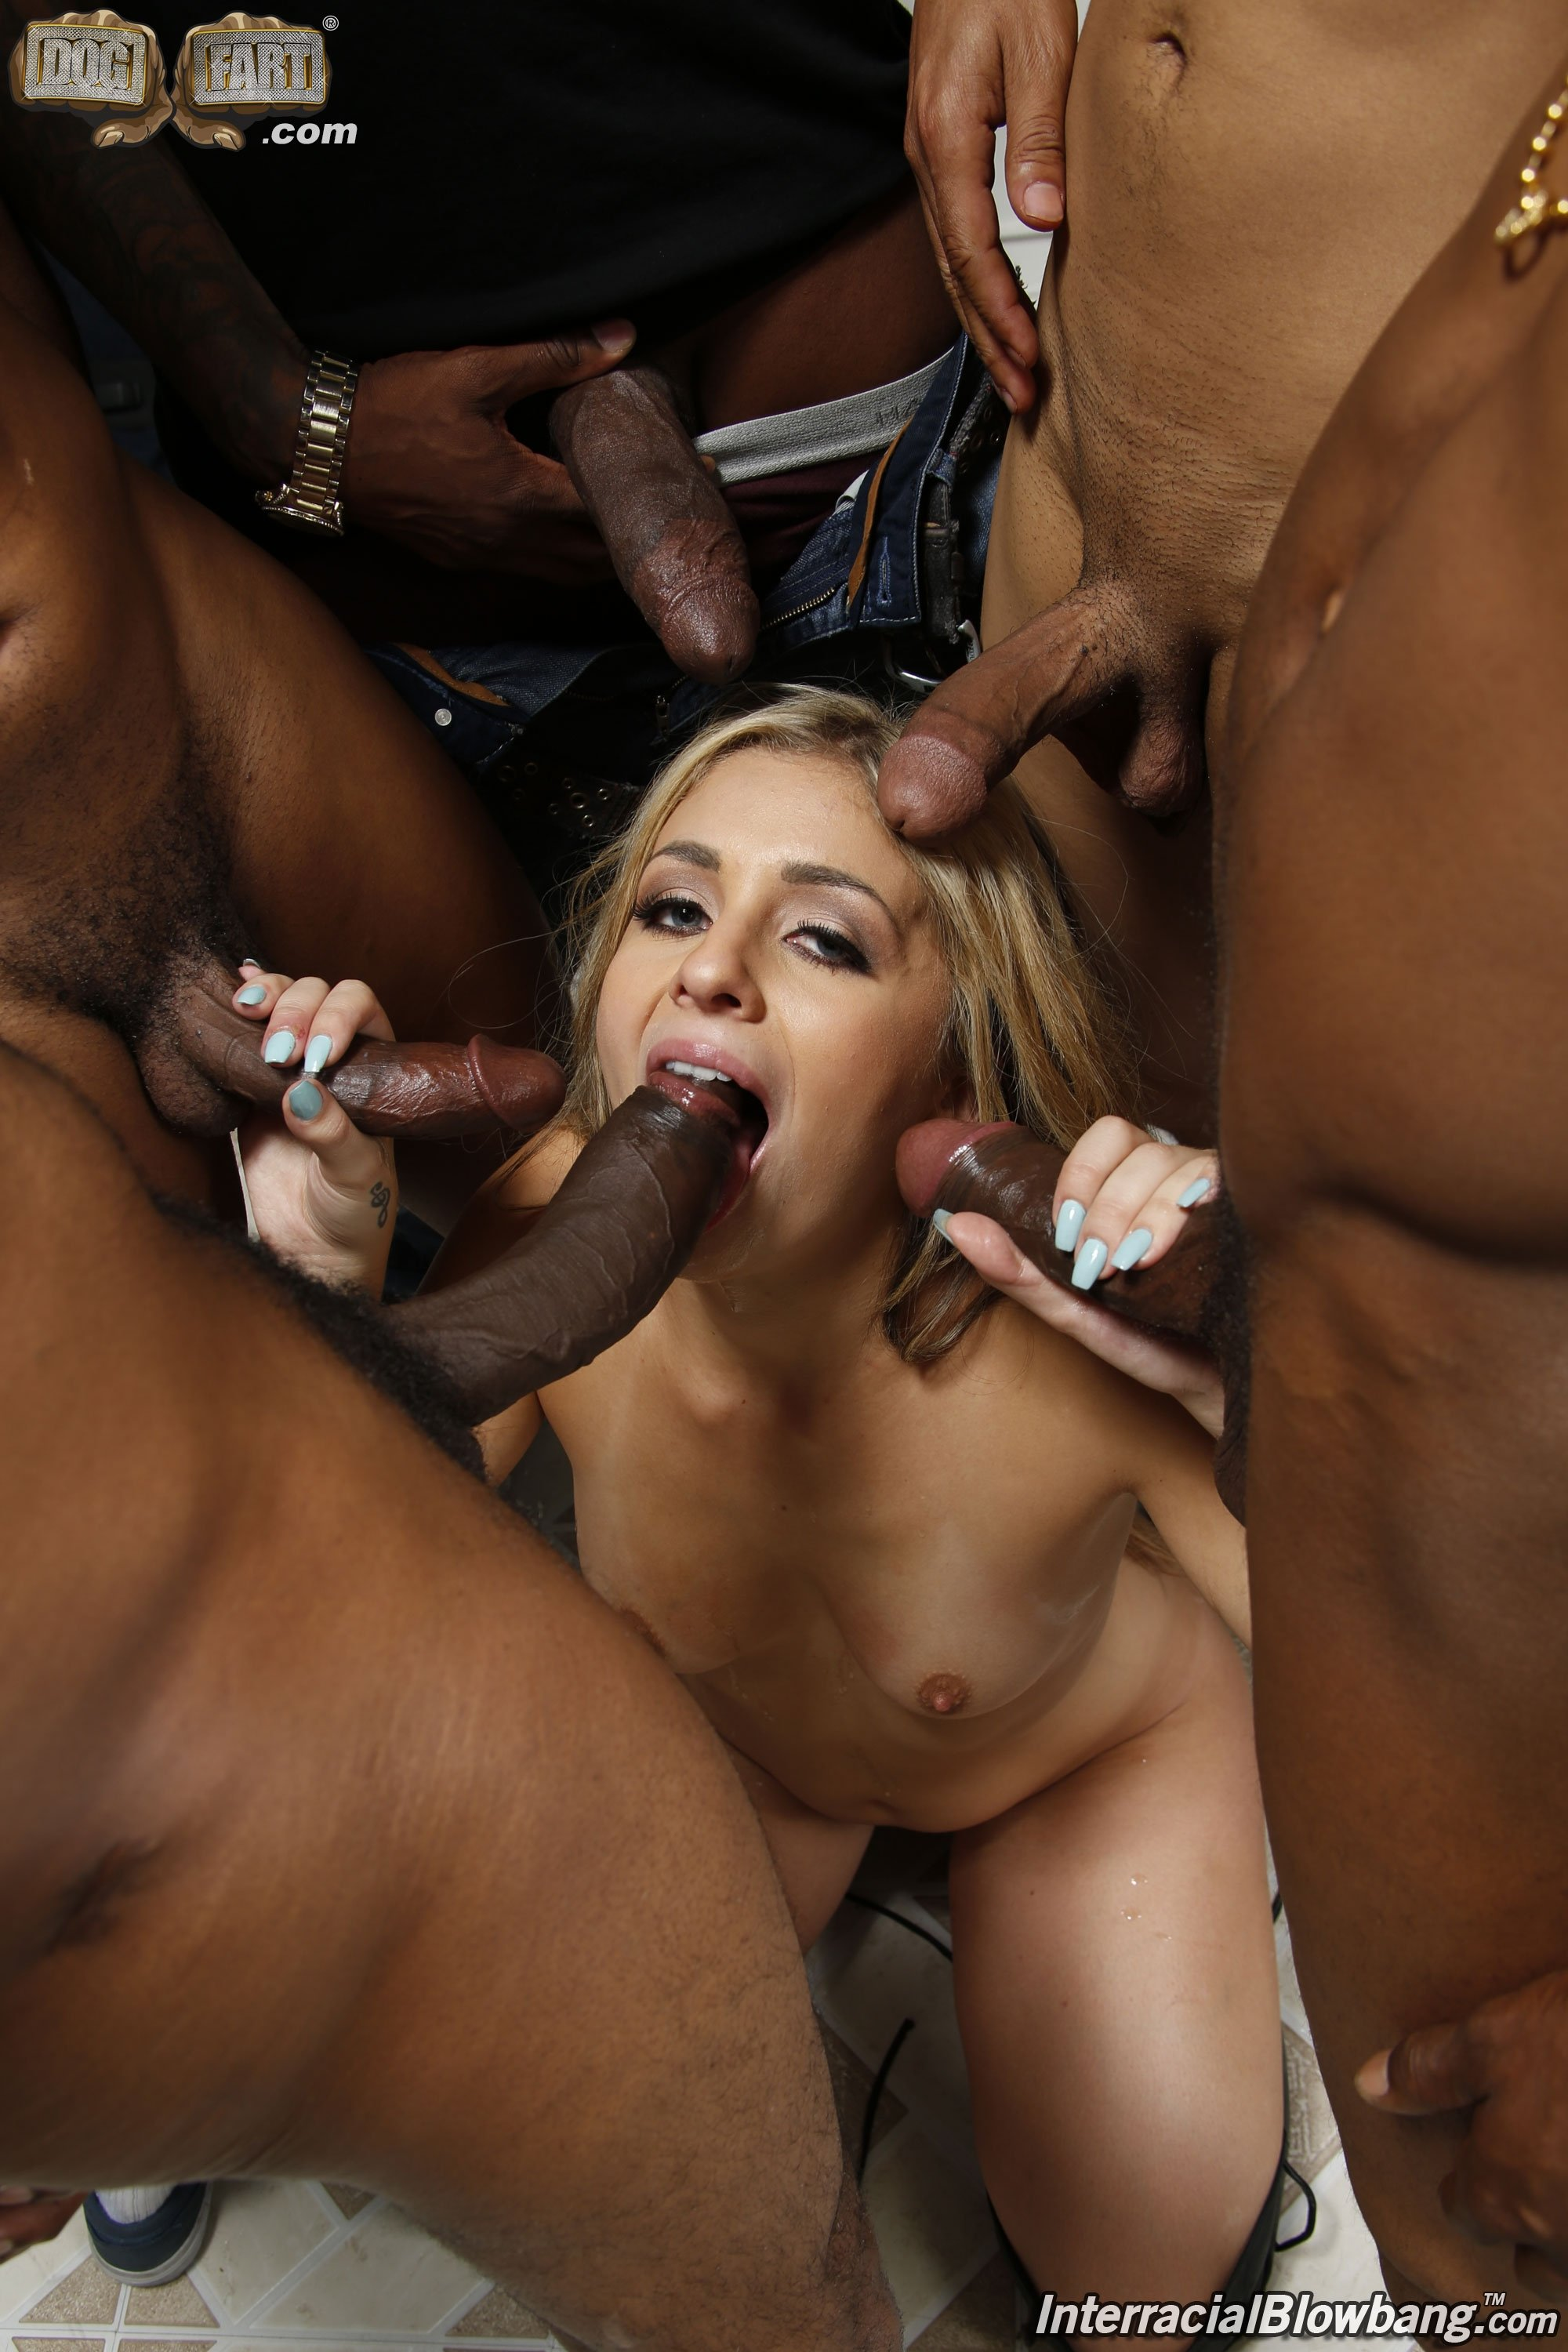 Brazlian gang bang on xvideos-4351